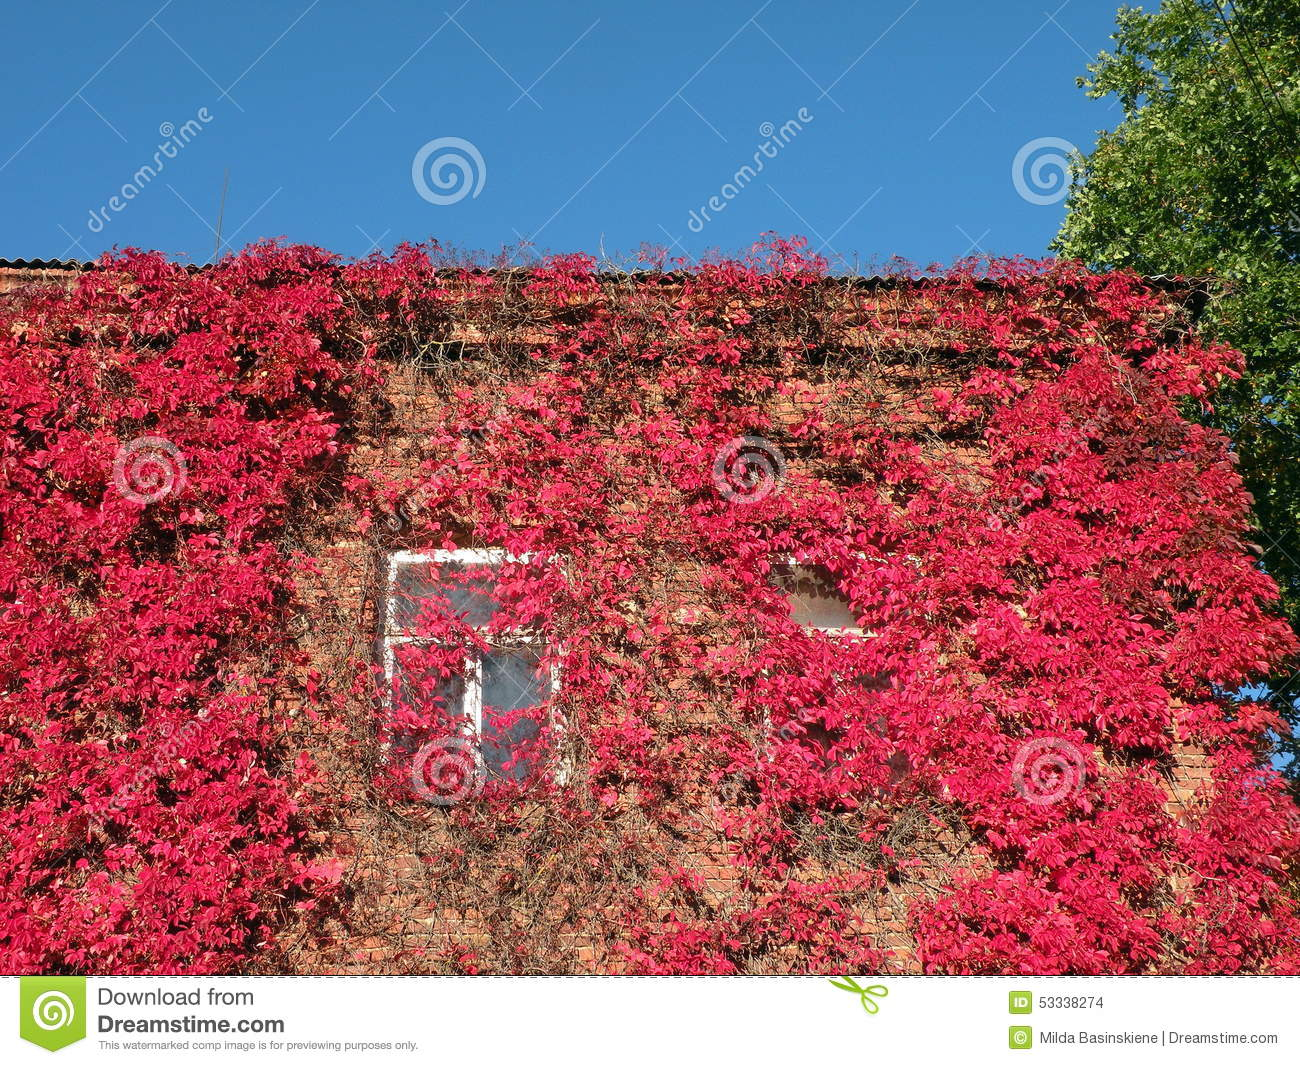 Plante grimpante rouge photo stock image 53338274 for Plante rouge